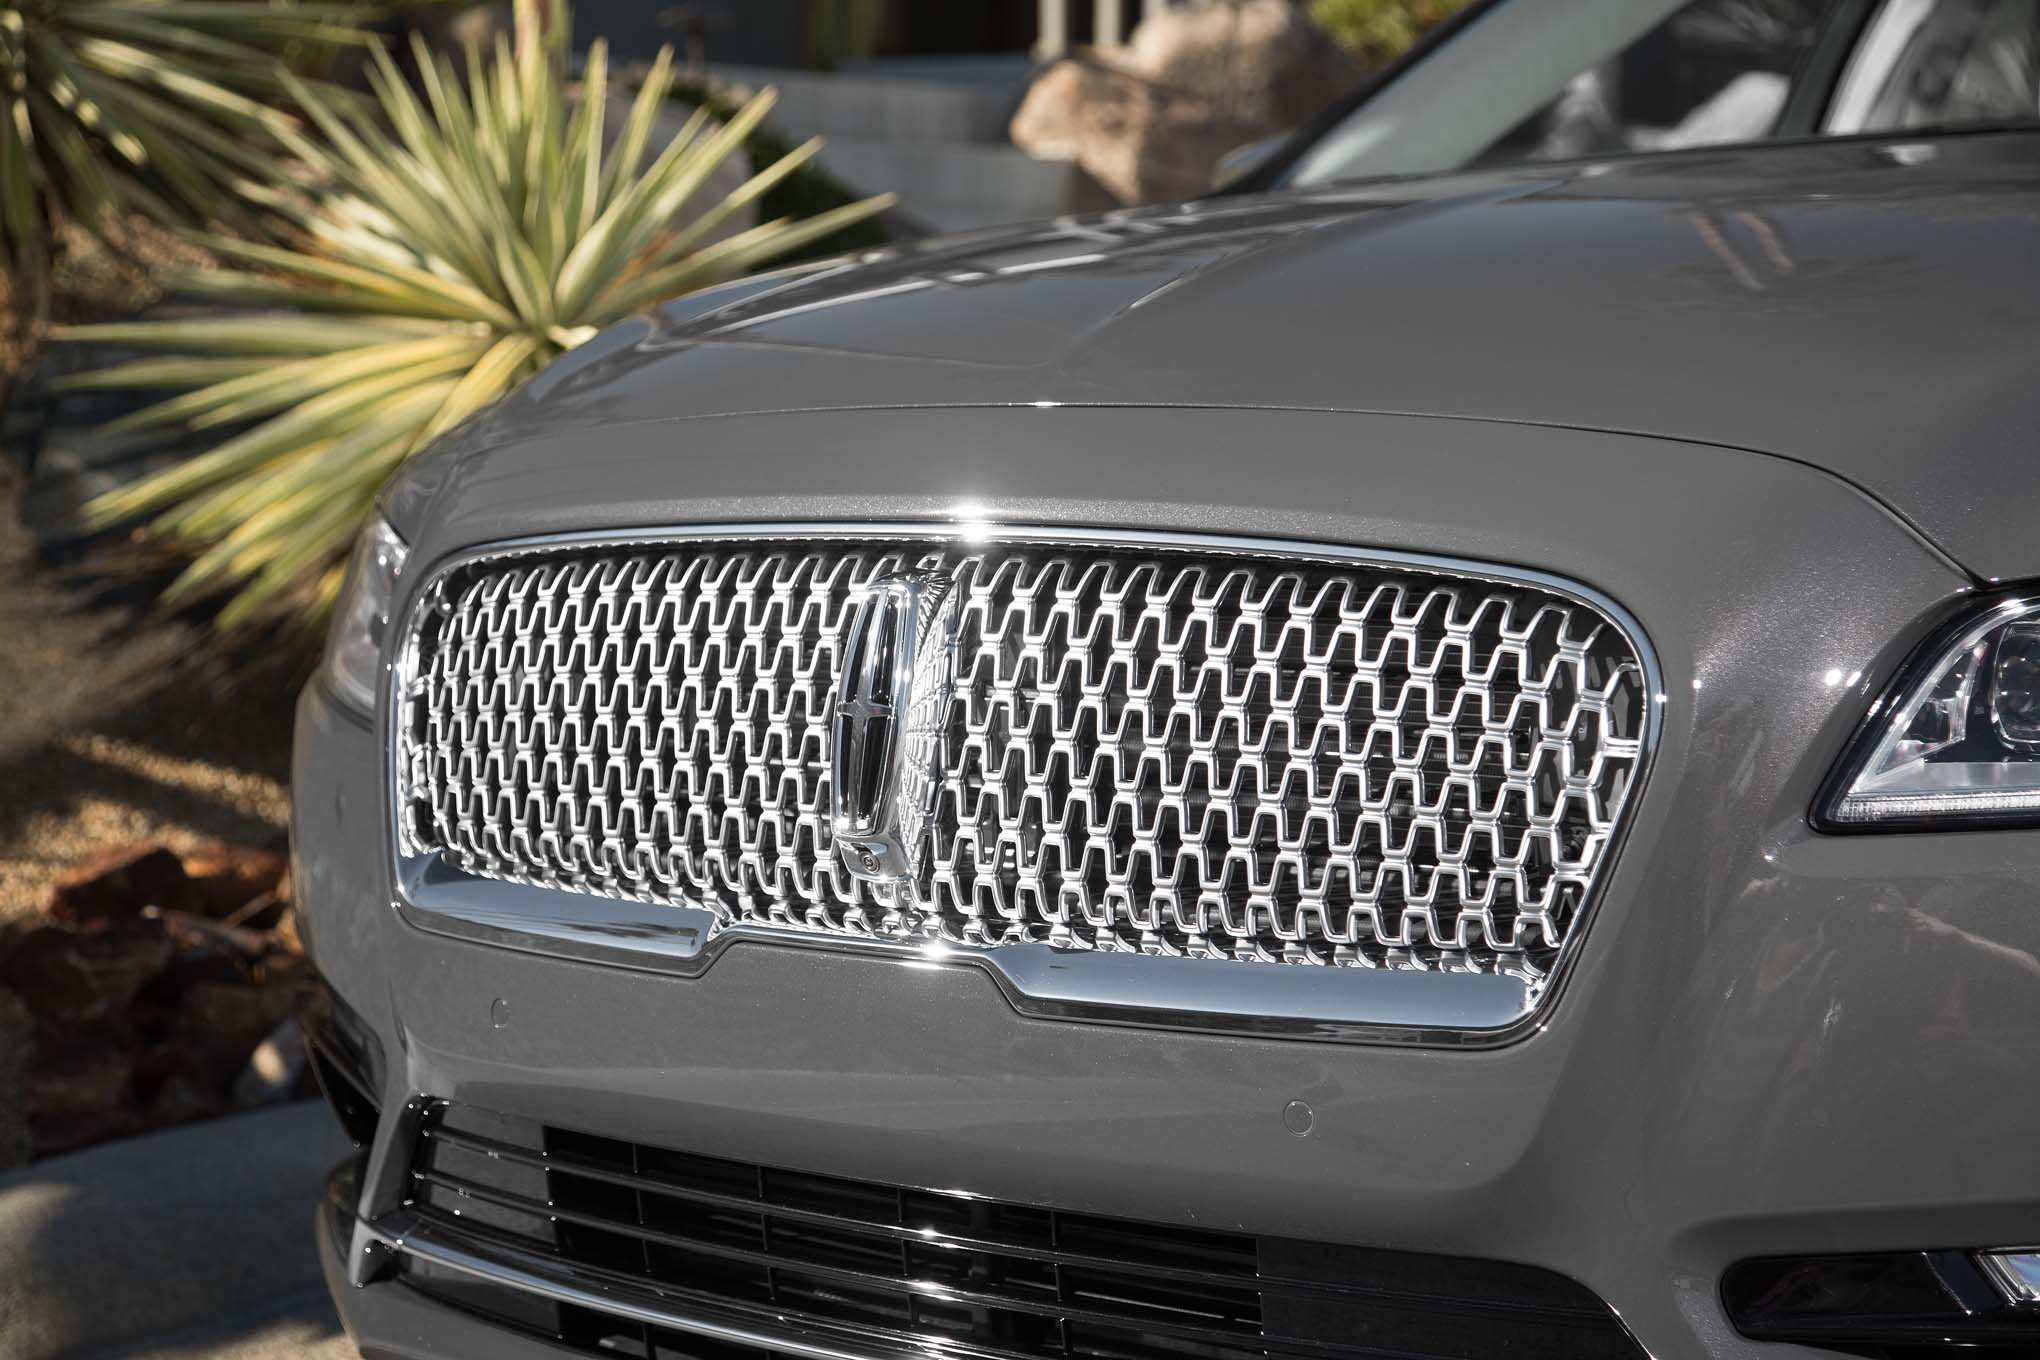 2017 Lincoln Continental Exterior View Grille (Photo 9 of 41)